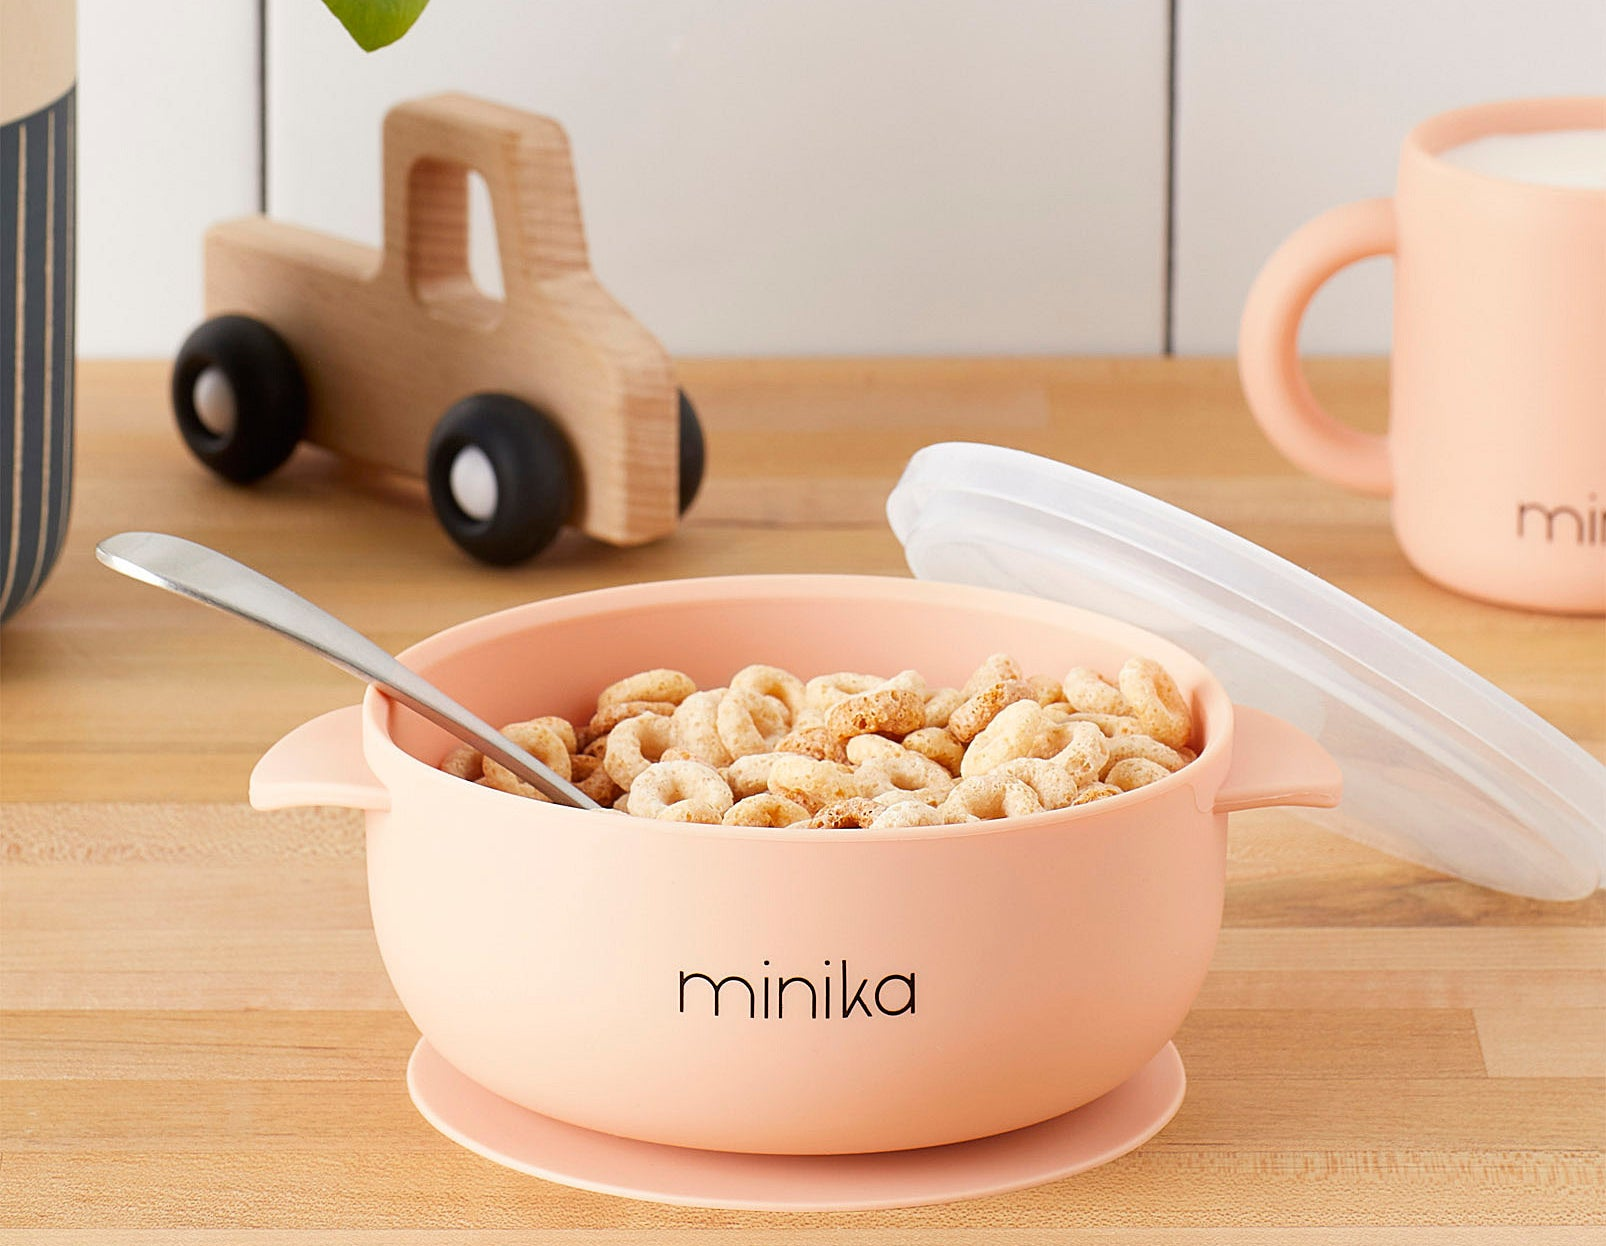 A small silicone bowl stuck to a wooden table and filled with Cheerios